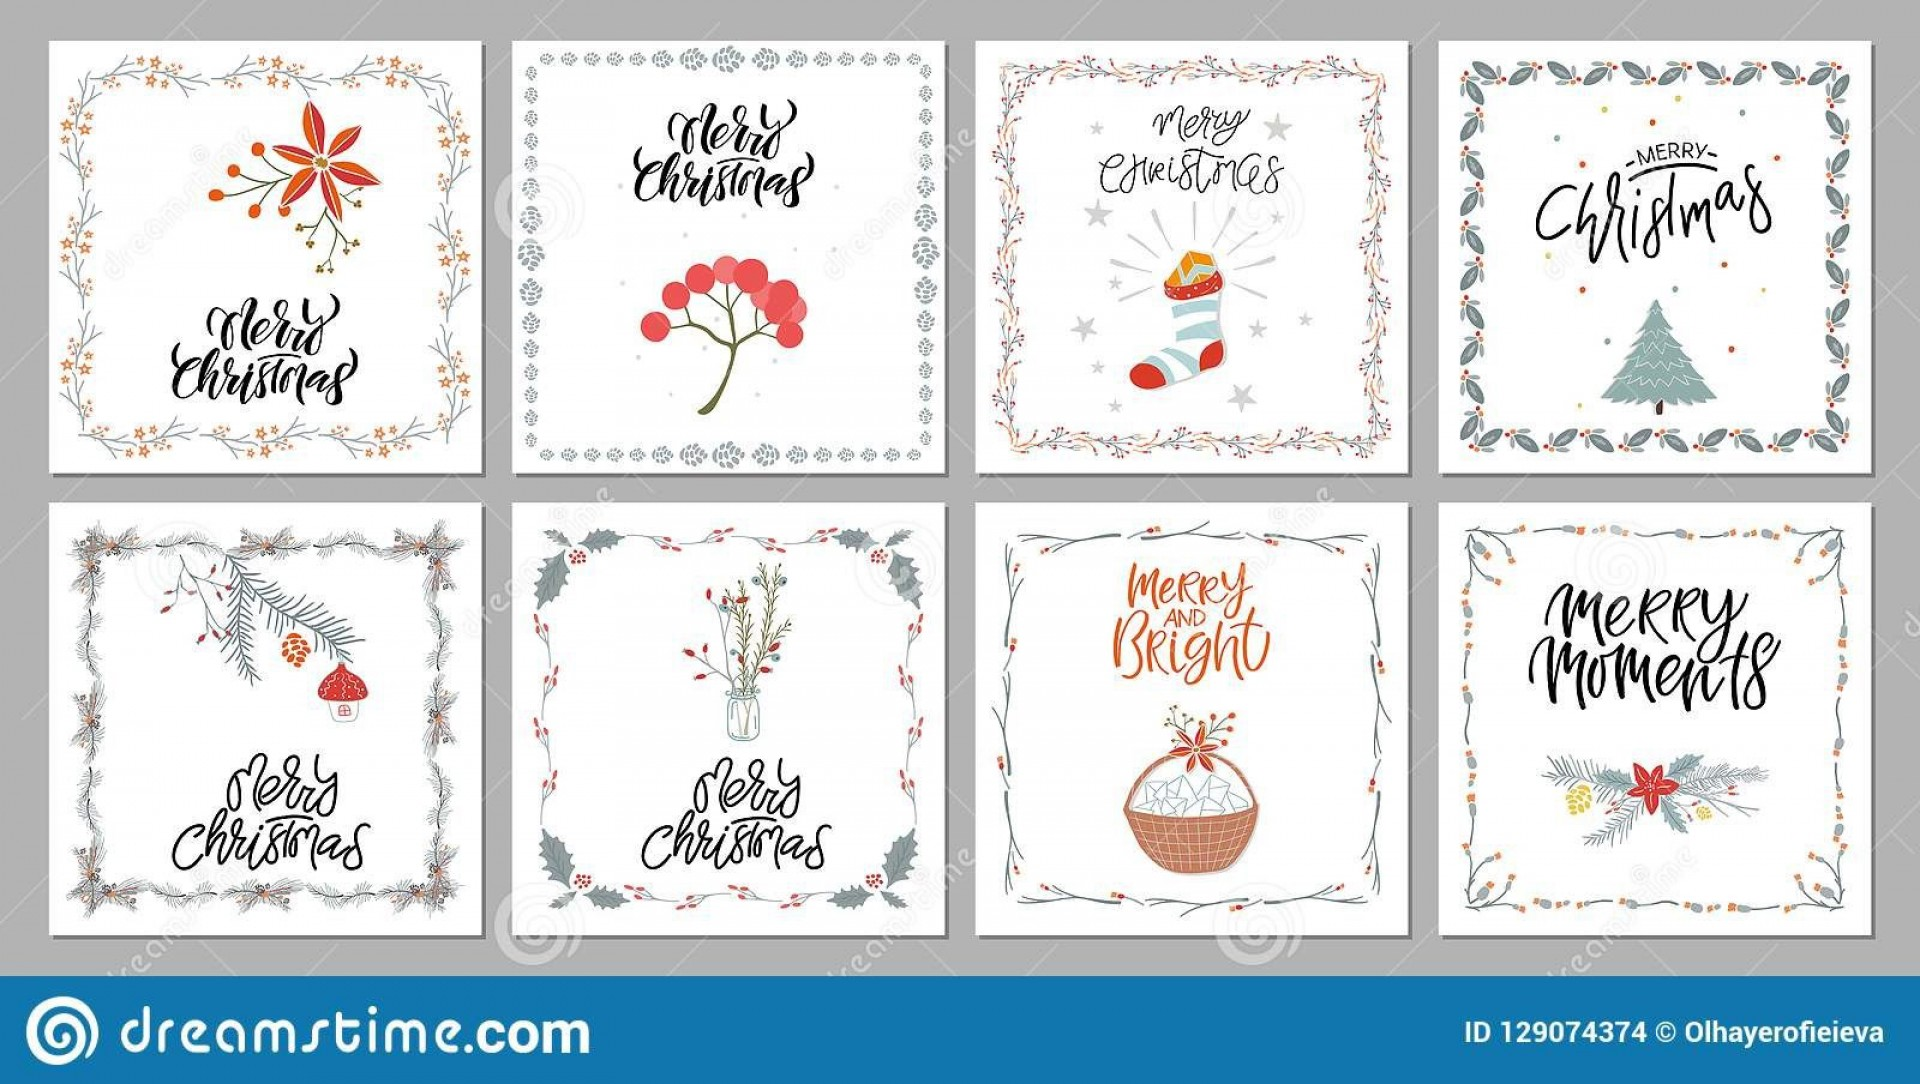 003 Best Free Printable Christma Gift Voucher Template Idea  Templates Holiday Certificate1920